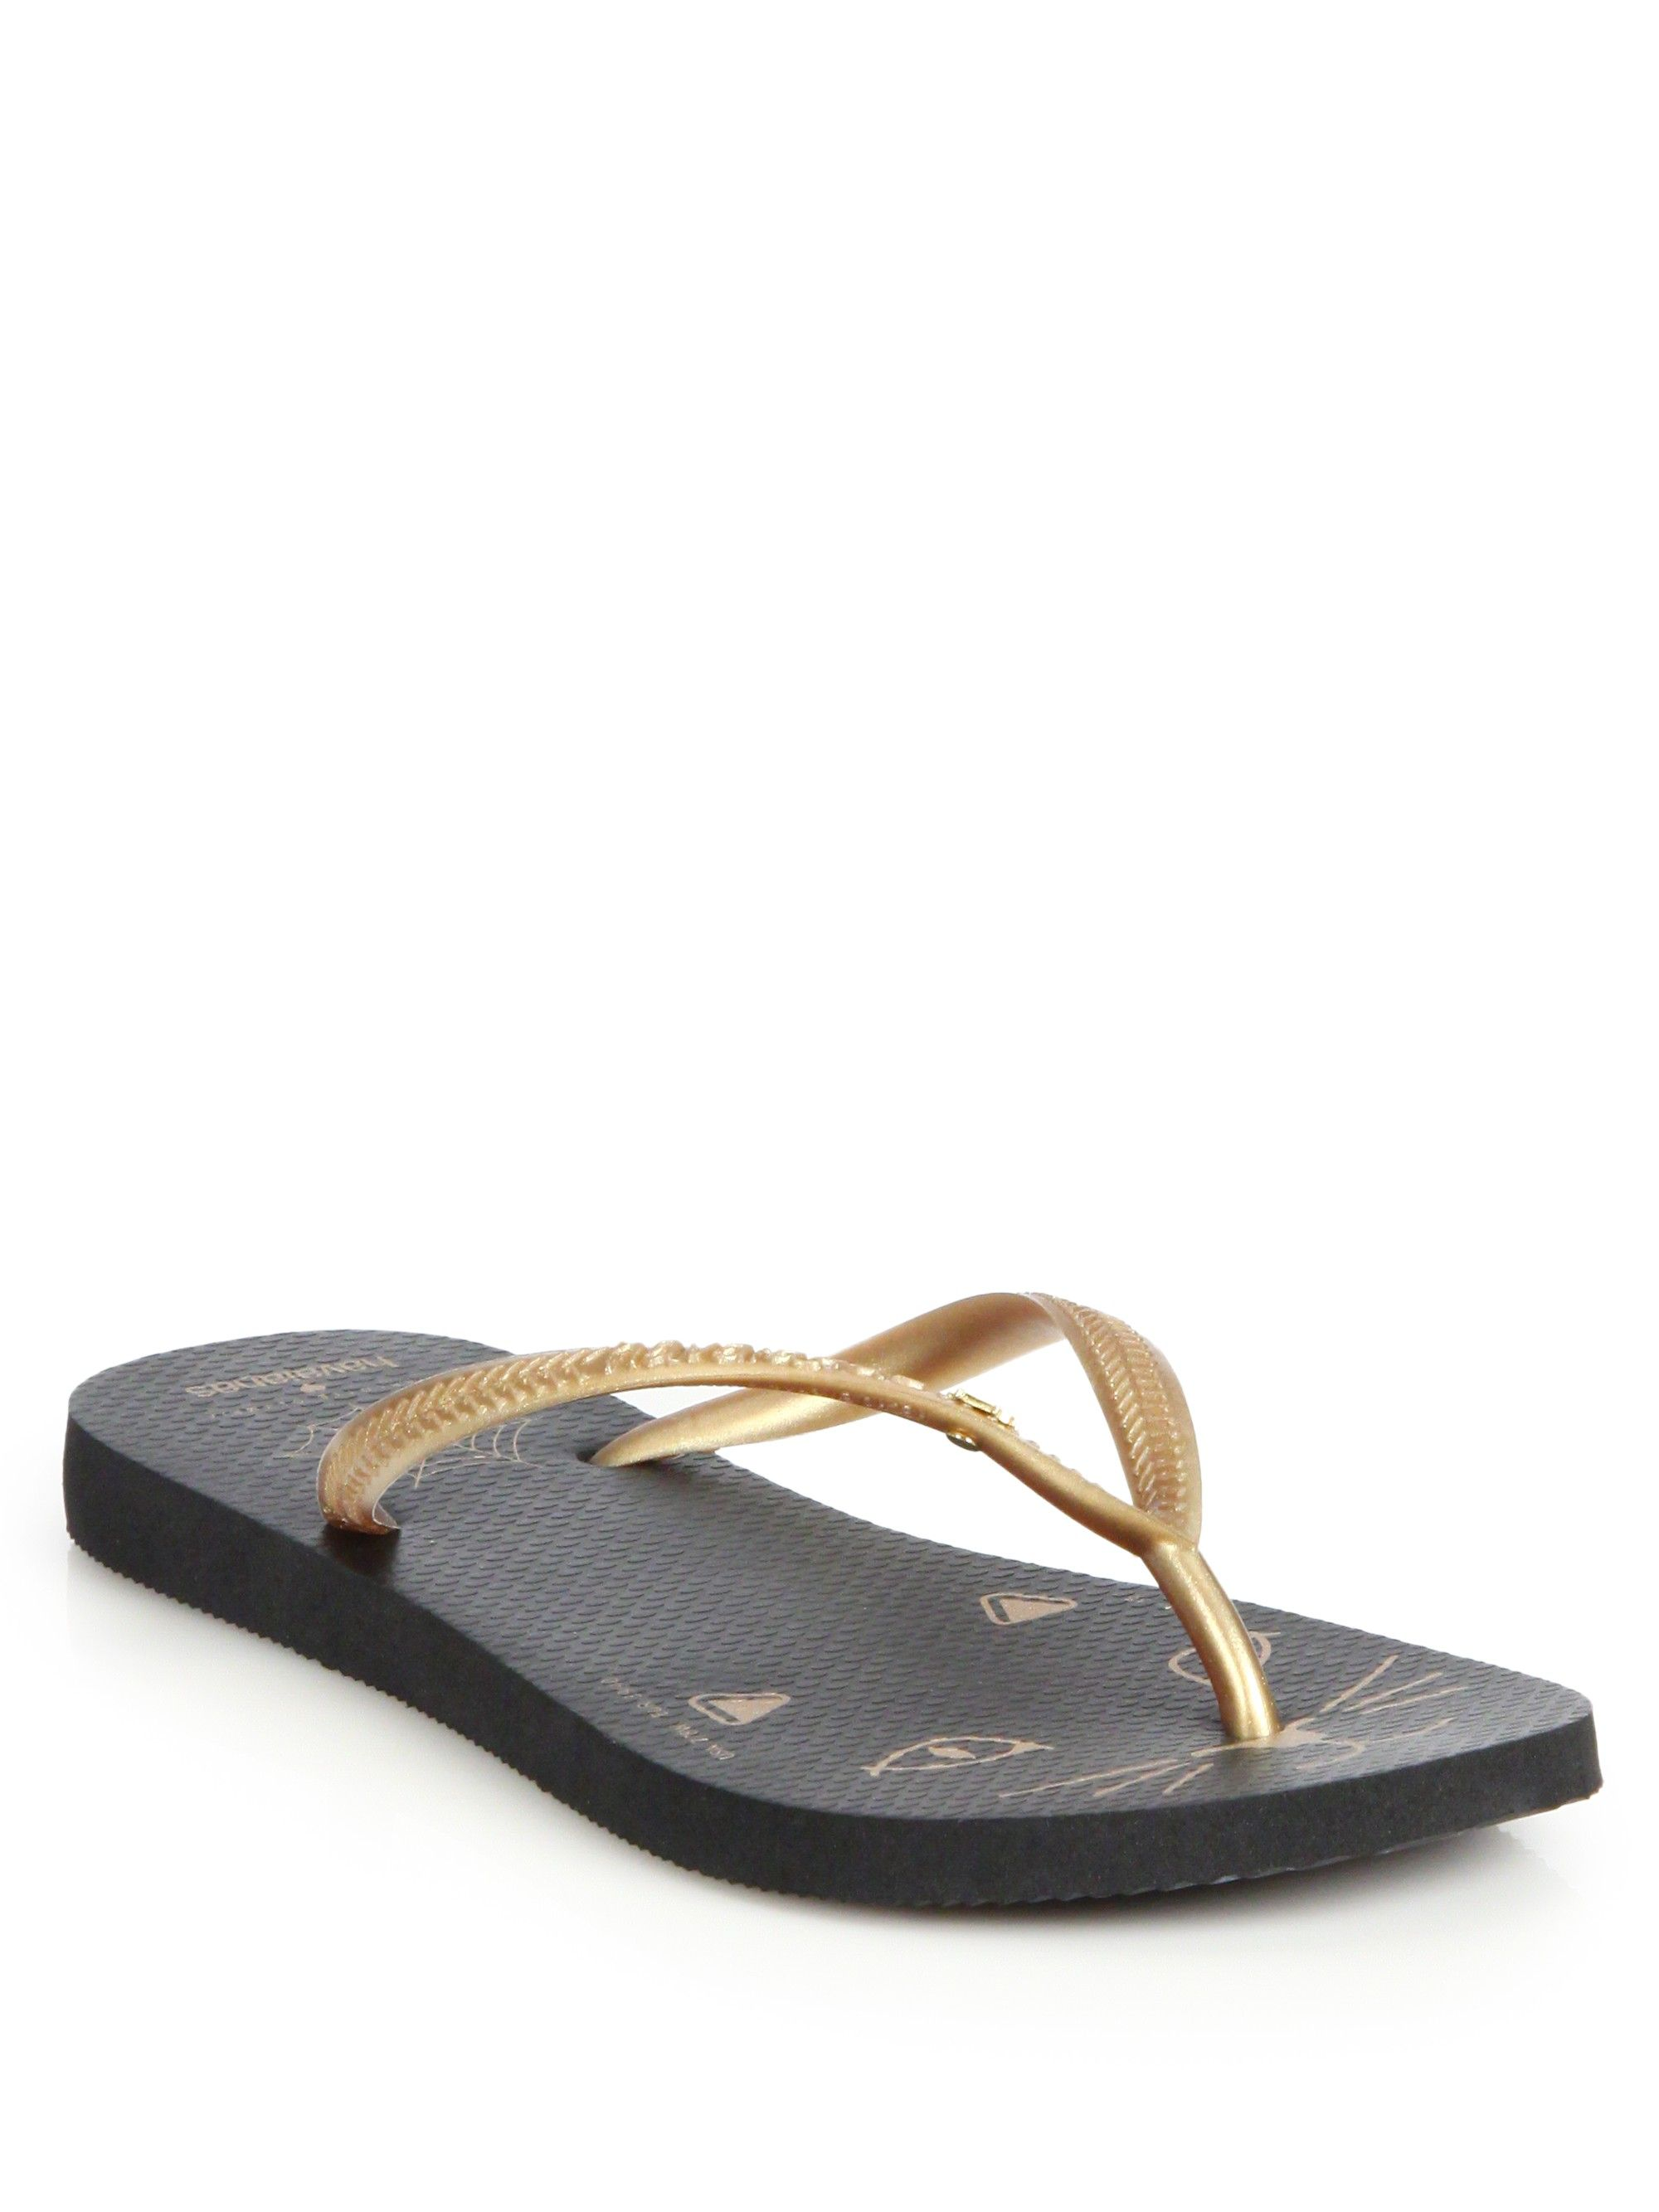 Charlotte Olympia Rubber Sandals Outlet With Mastercard Clearance Best Store To Get uSCmpFnU